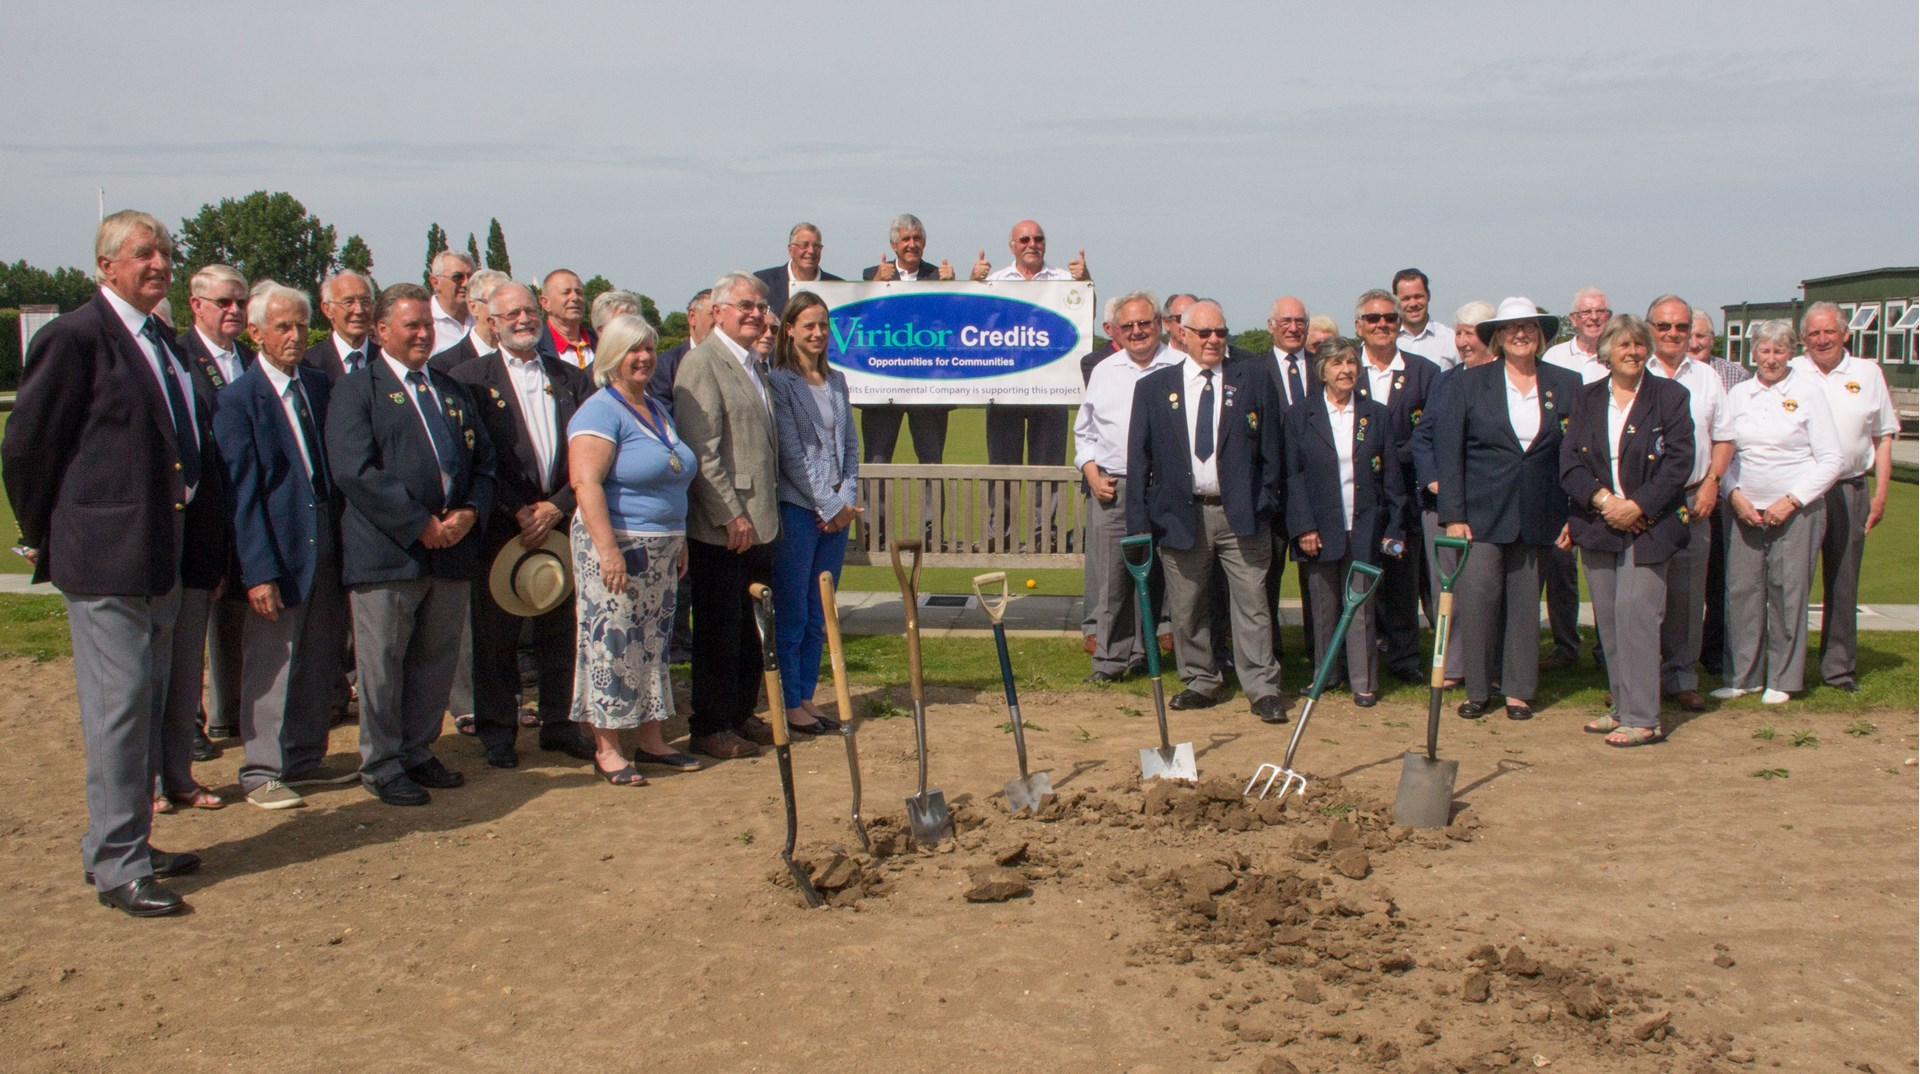 Members and guests at the ground breaking ceremony